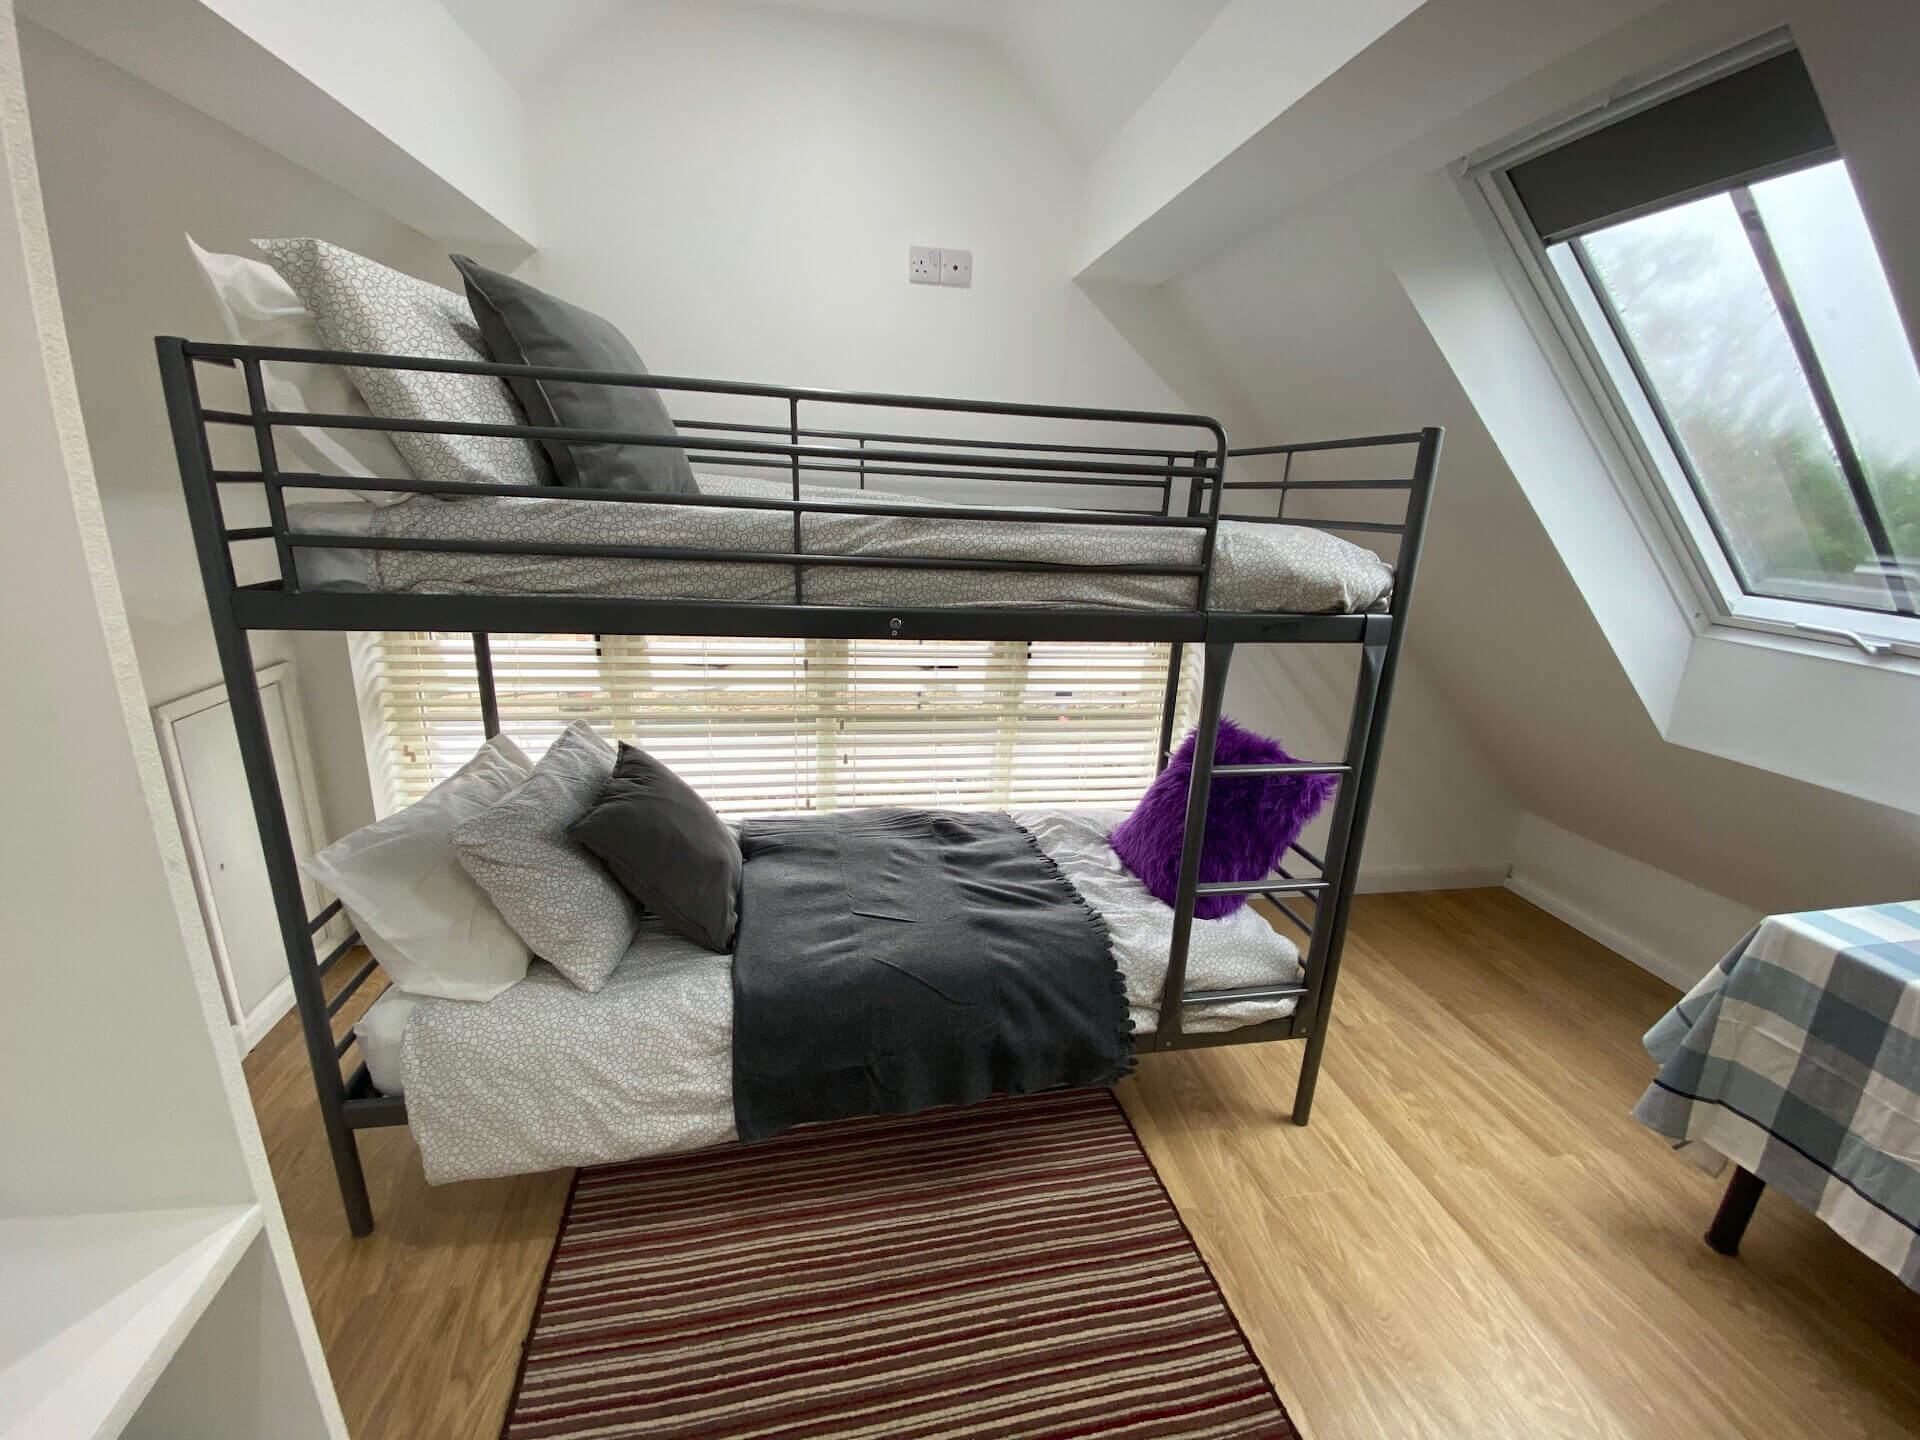 loft-conversion-by-touchstone-lofts (11)